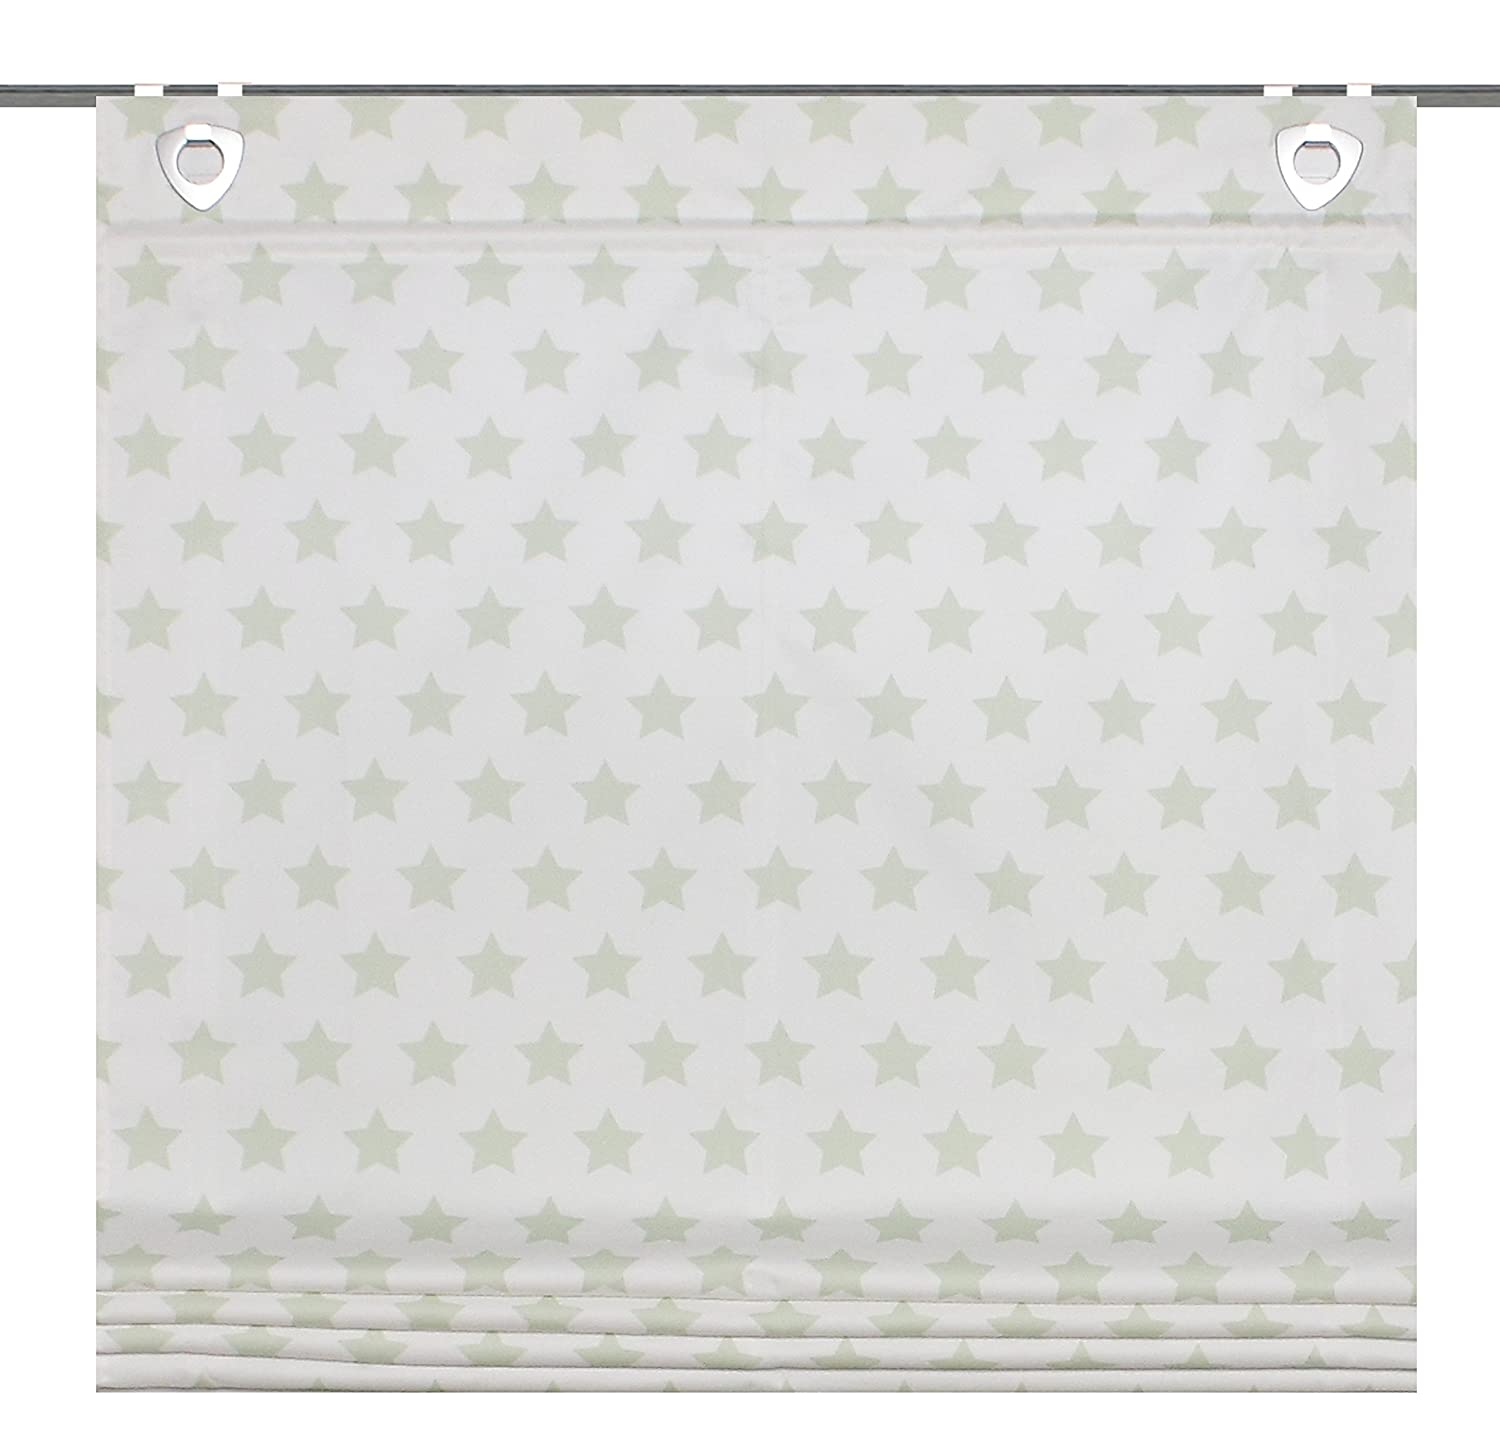 FASHION FOR HOME Home Fashion 91133 – Panel Roman Blind 140 x 60 cm Decorative Fabric Printed Green 91133-768 - H: 140 x B: 60 cm